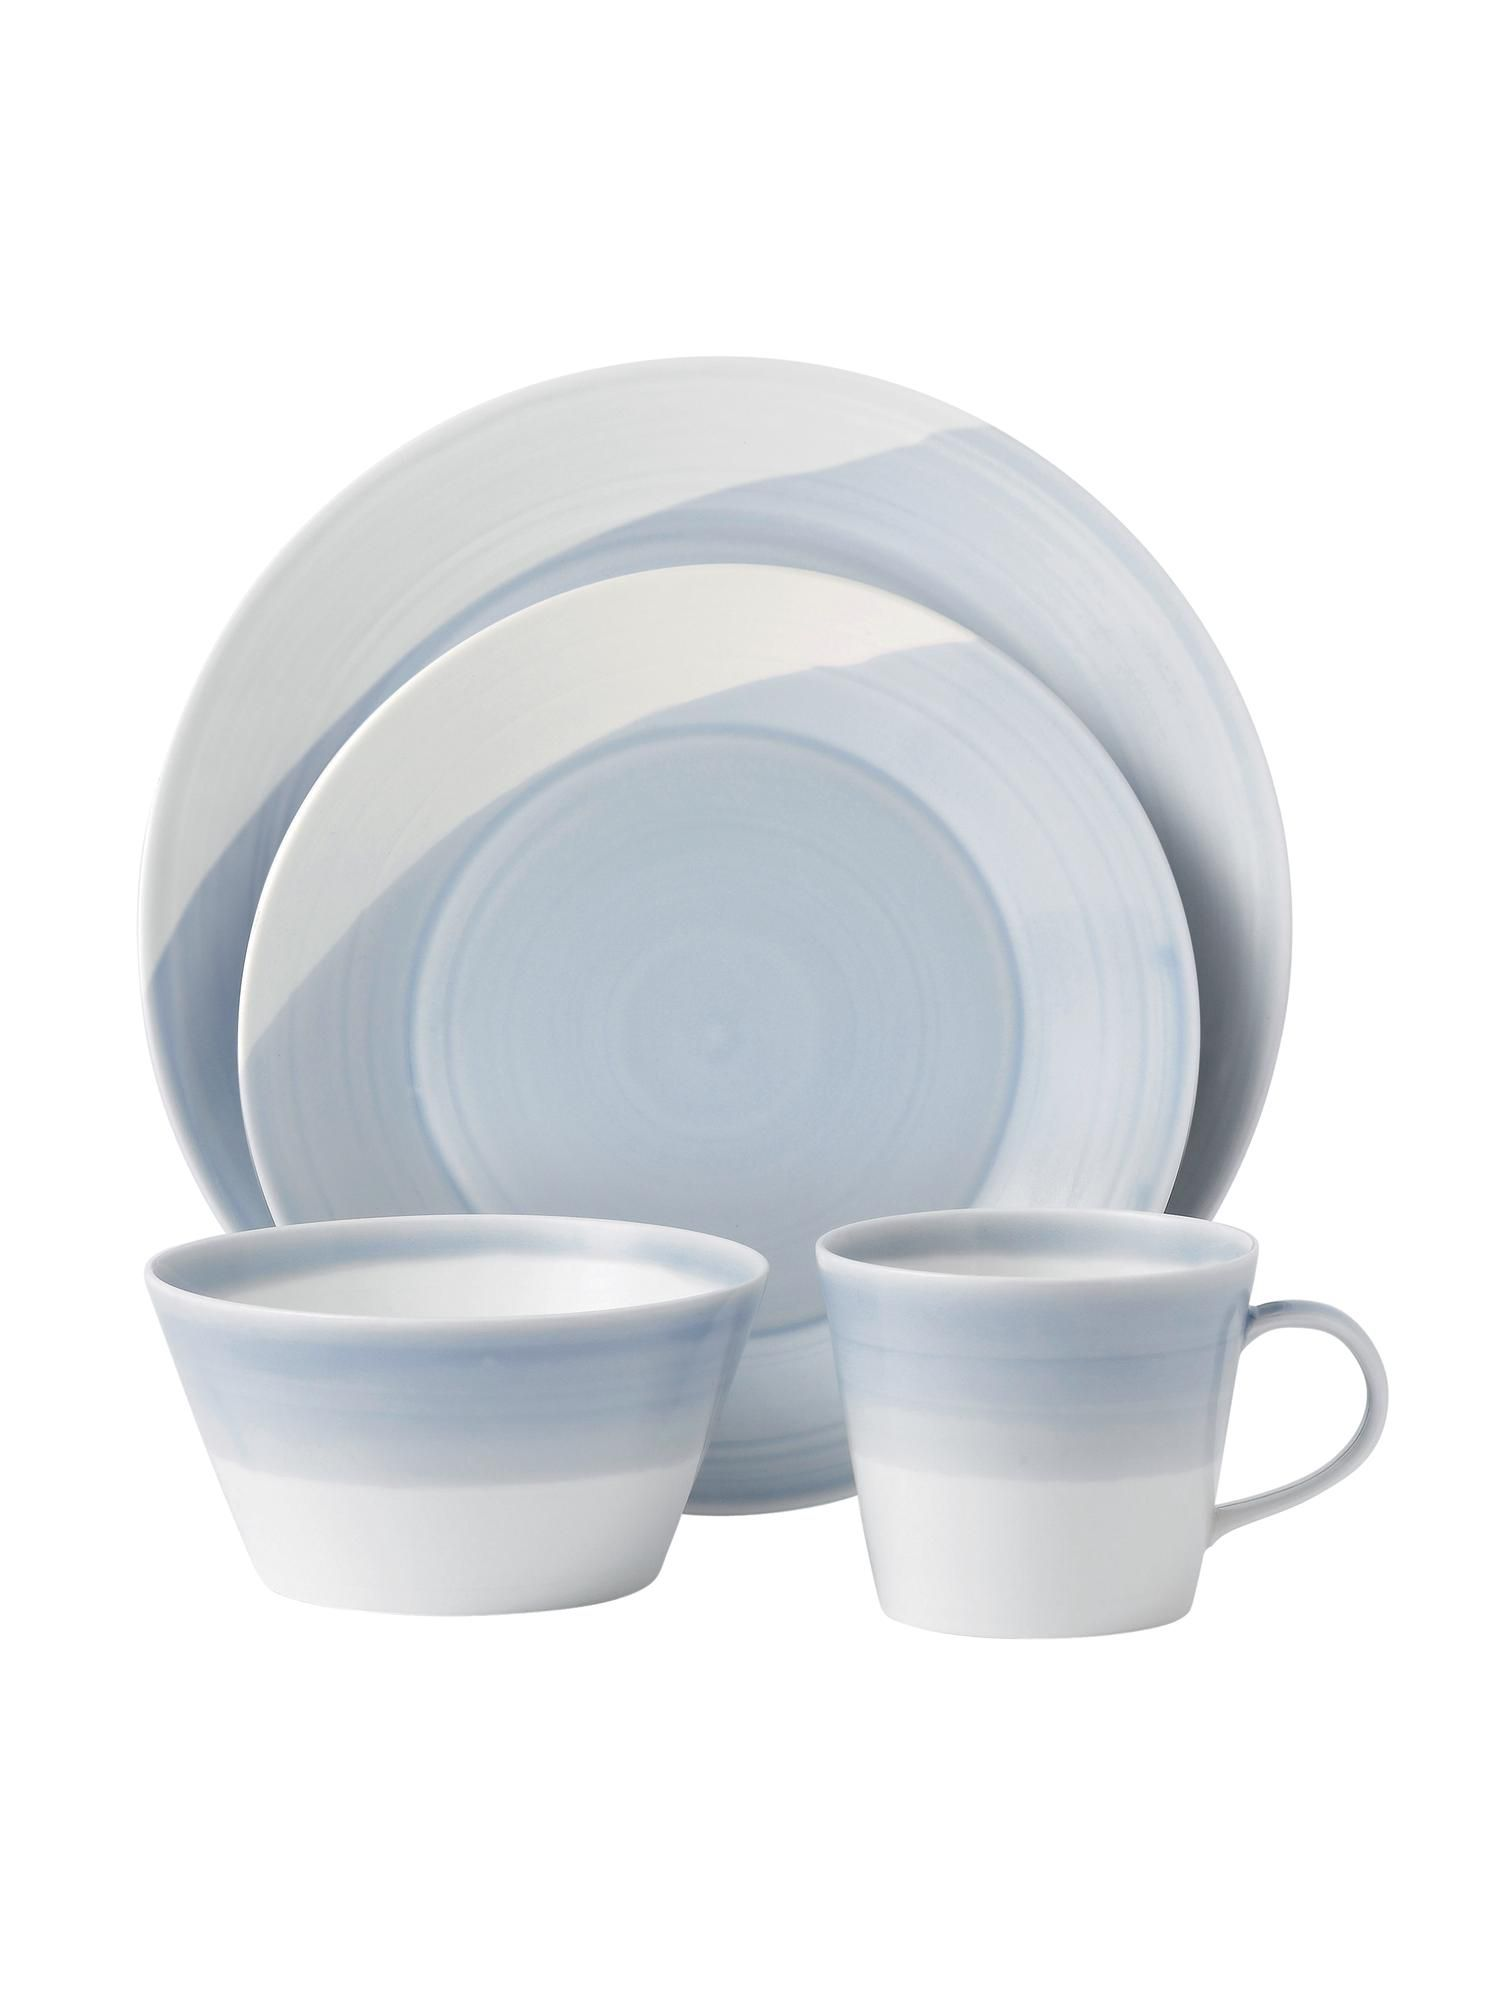 Royal Doulton 1815 dinnerware